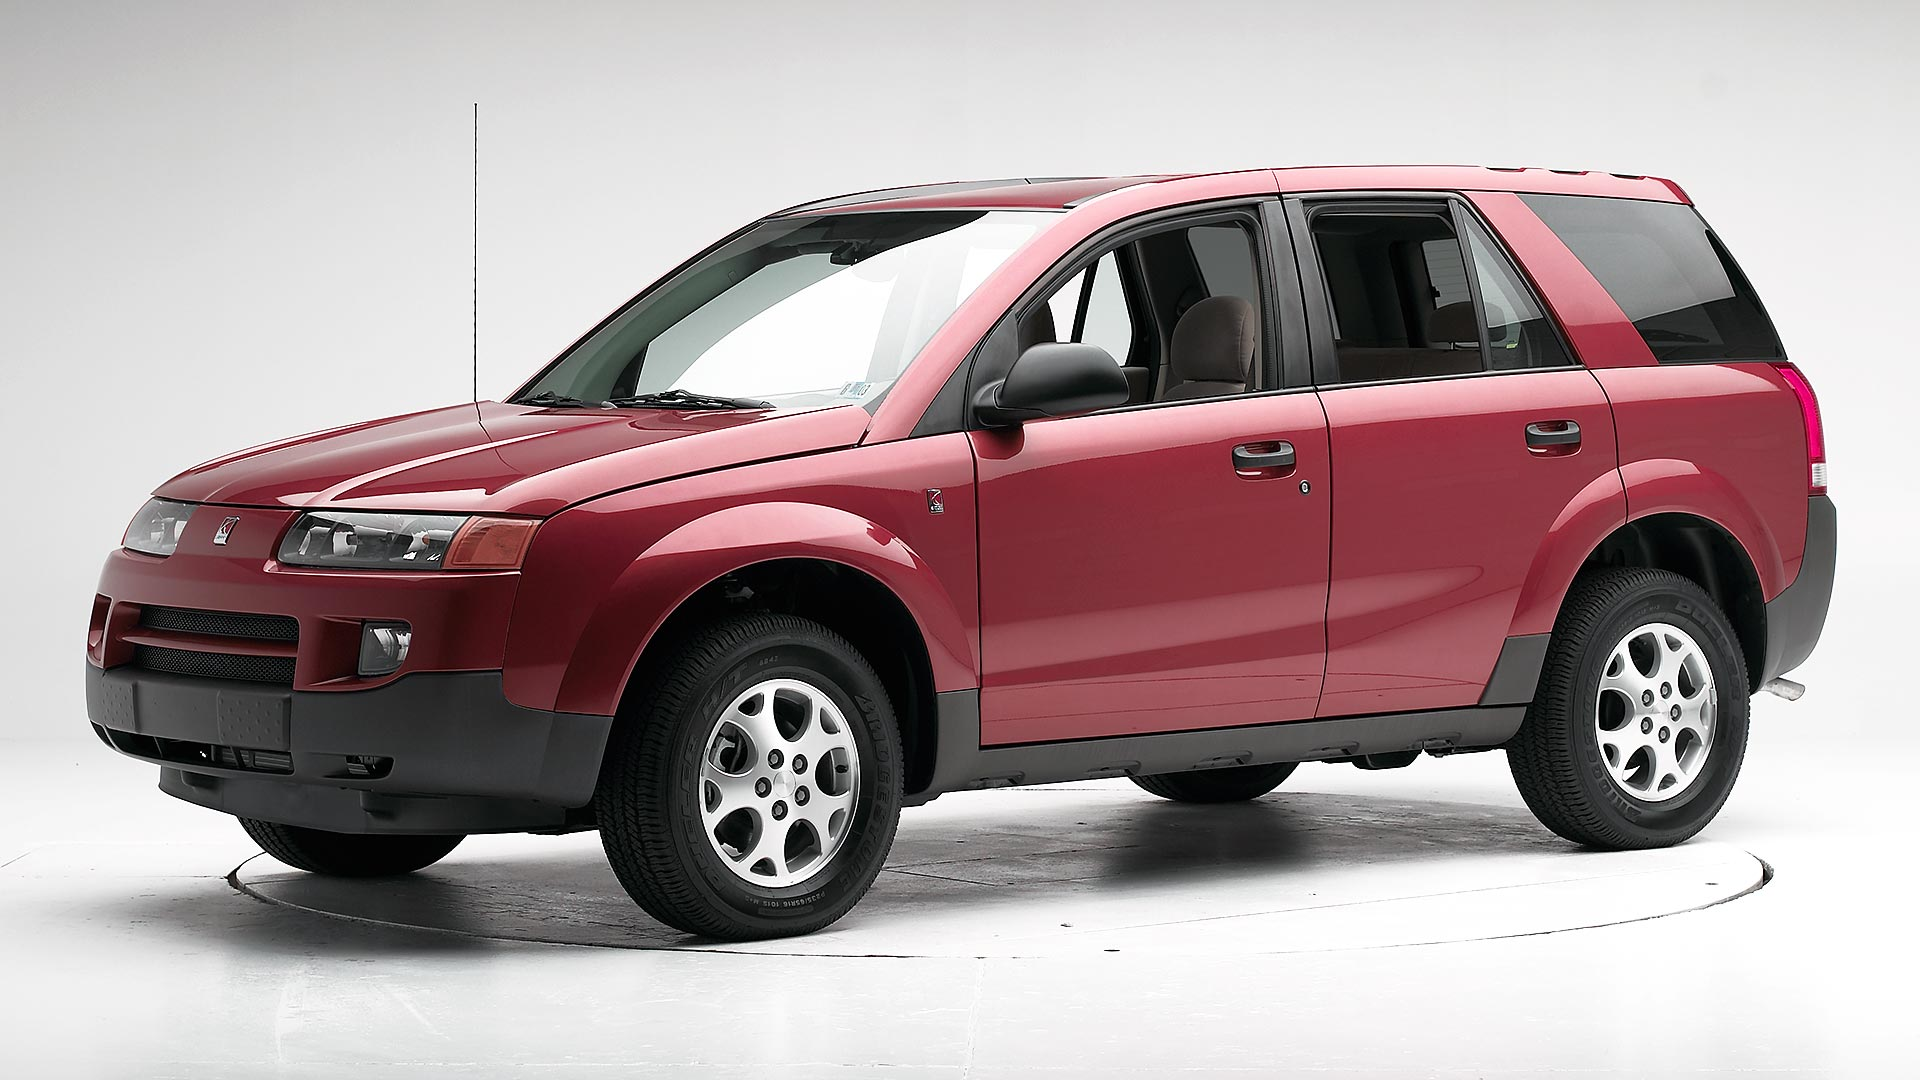 2005 Saturn VUE 4-door SUV